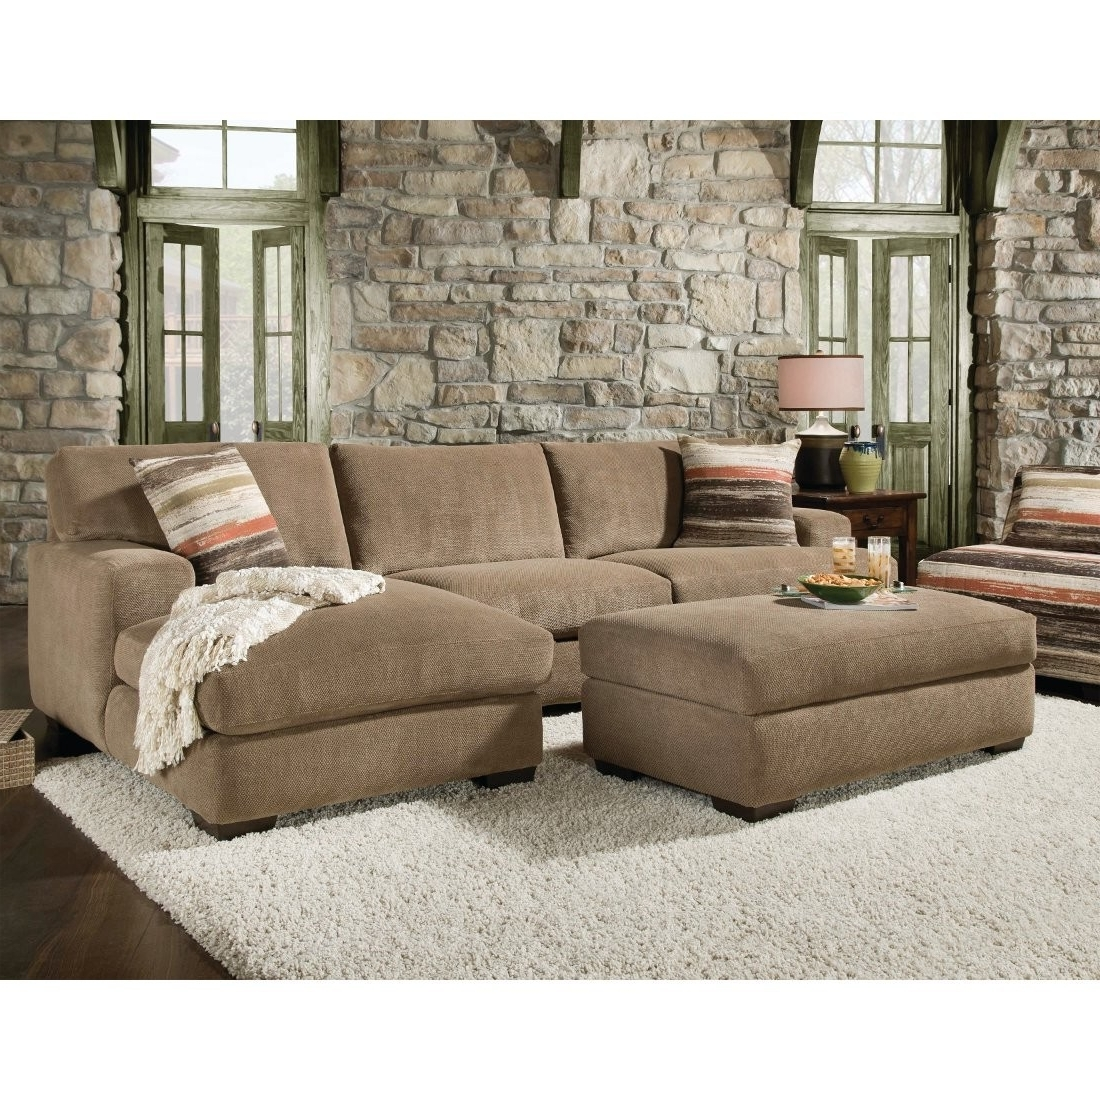 Leather Sectional Sleeper Sofa Sectional Sofas With Recliners And Intended For 2017 Chaise Sofa Sectionals (View 5 of 15)